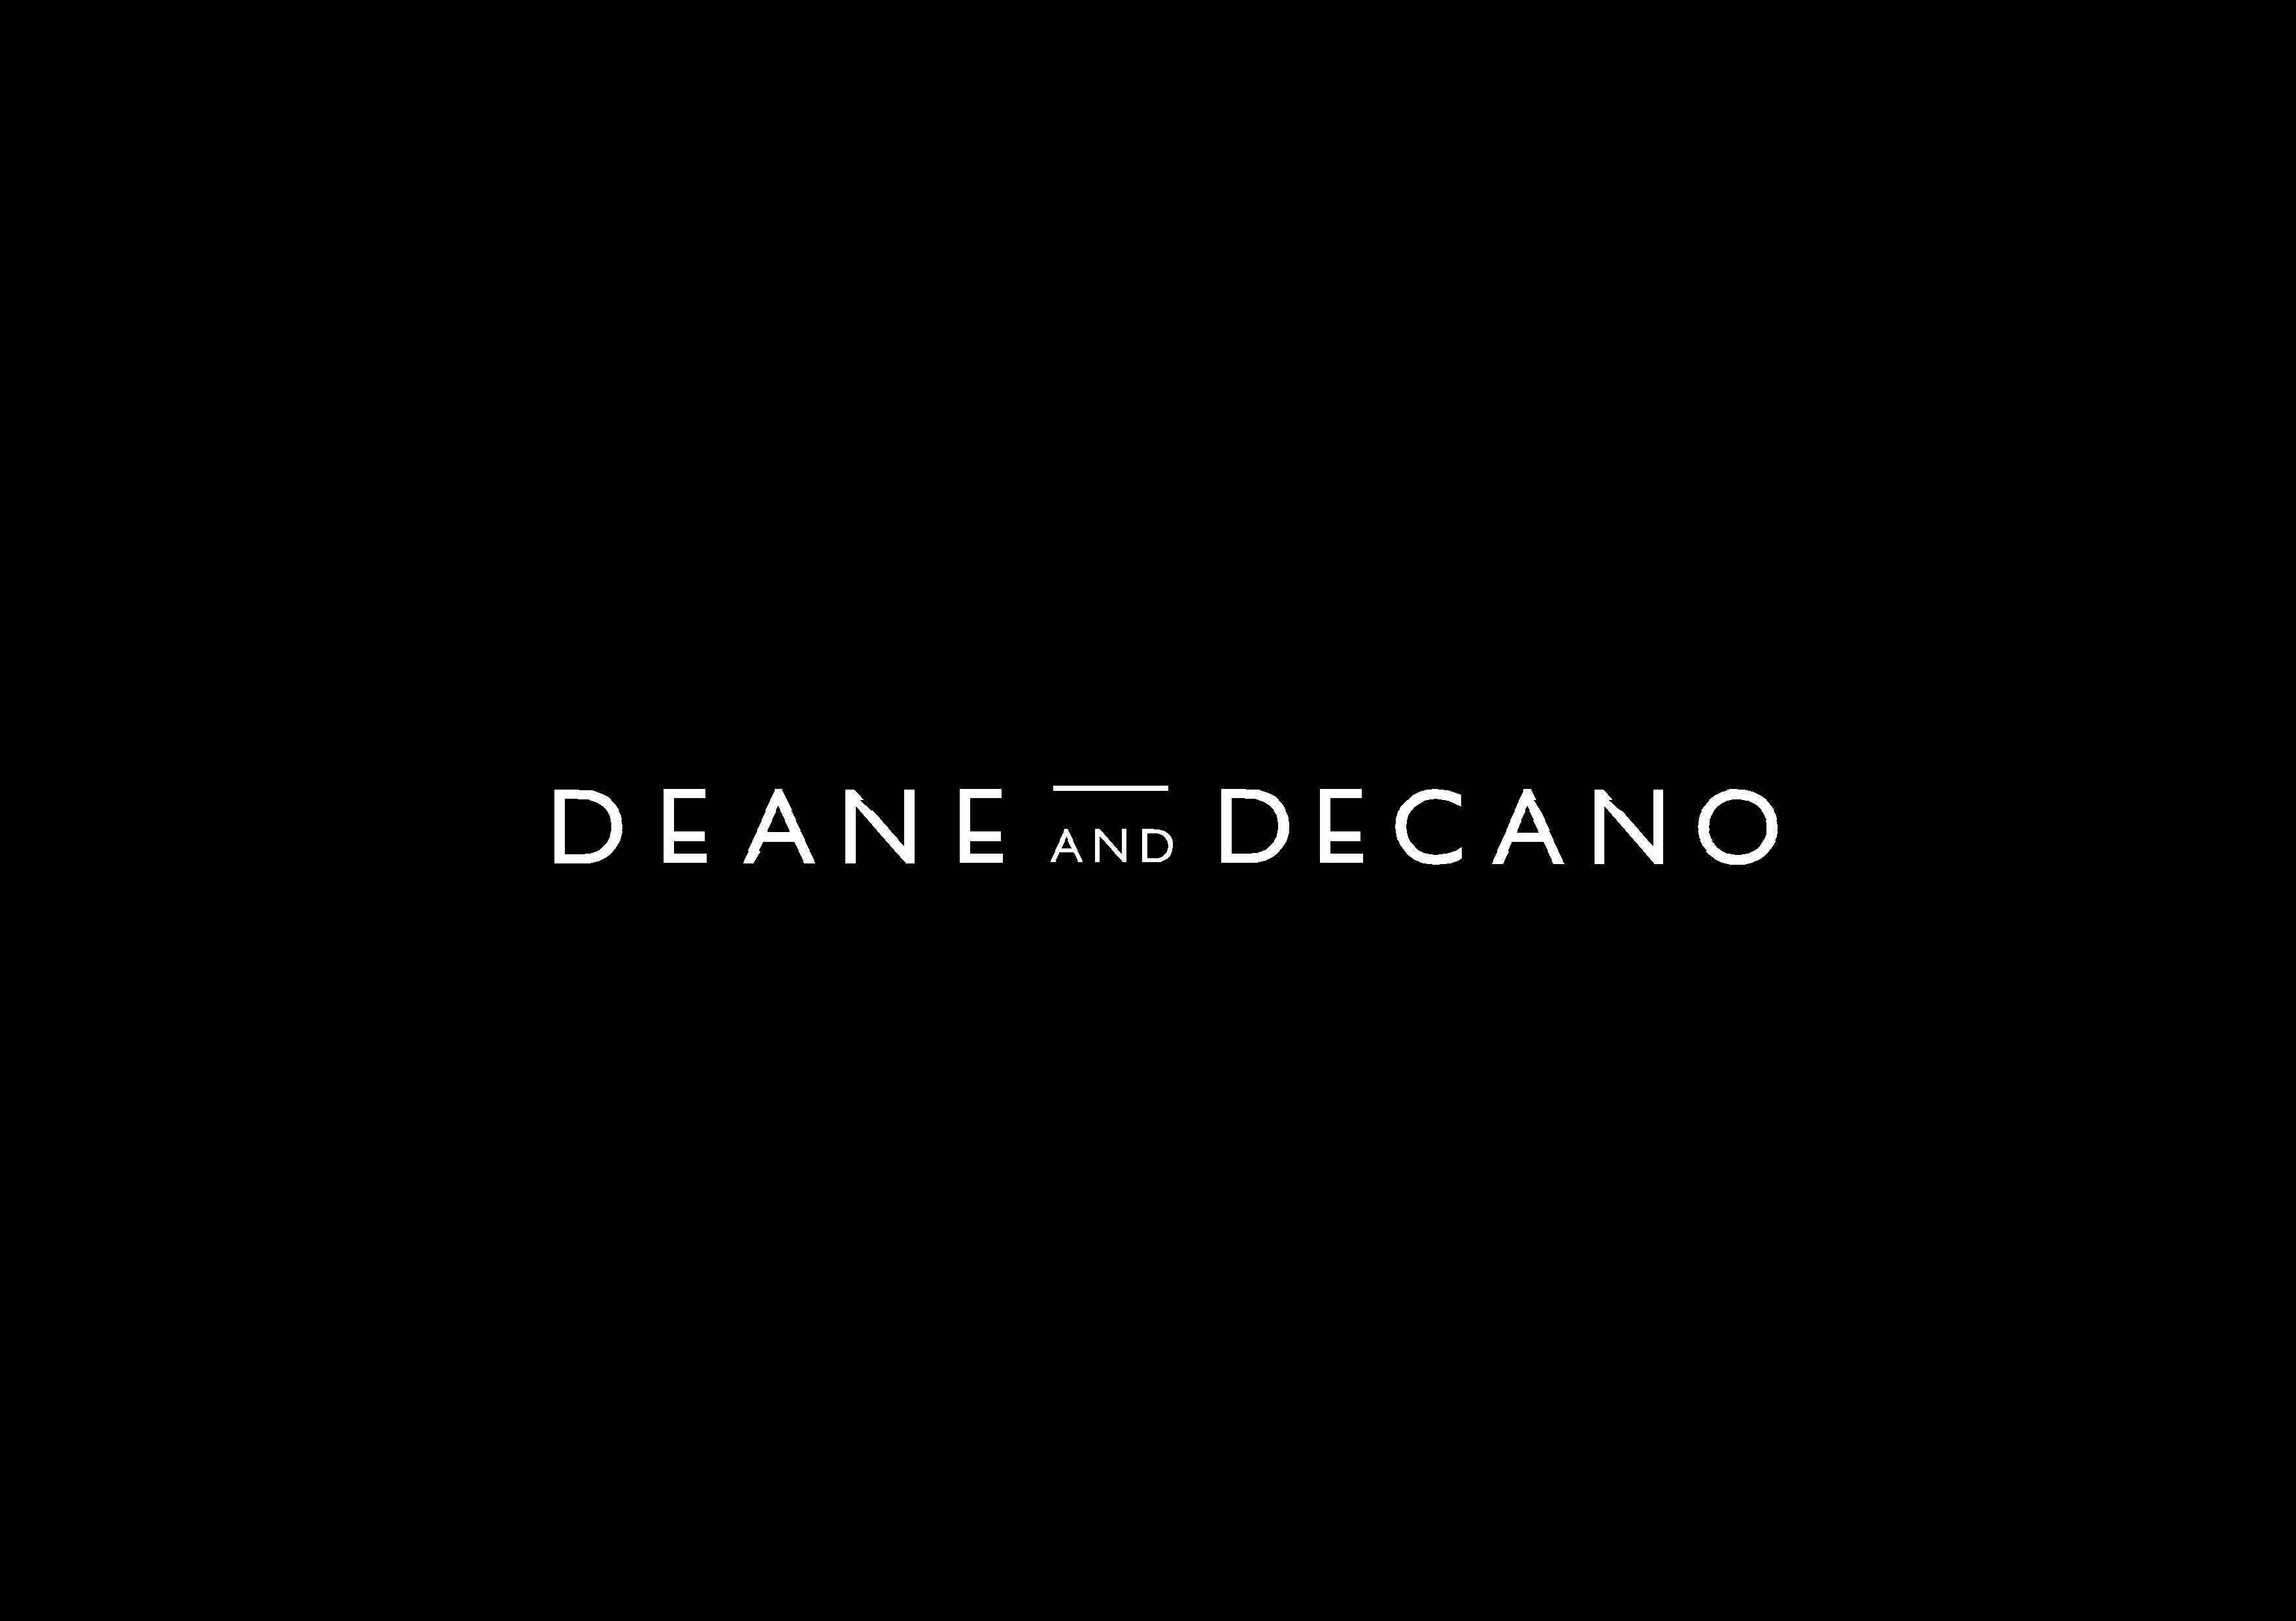 DEANES and DE CANO (2).jpg